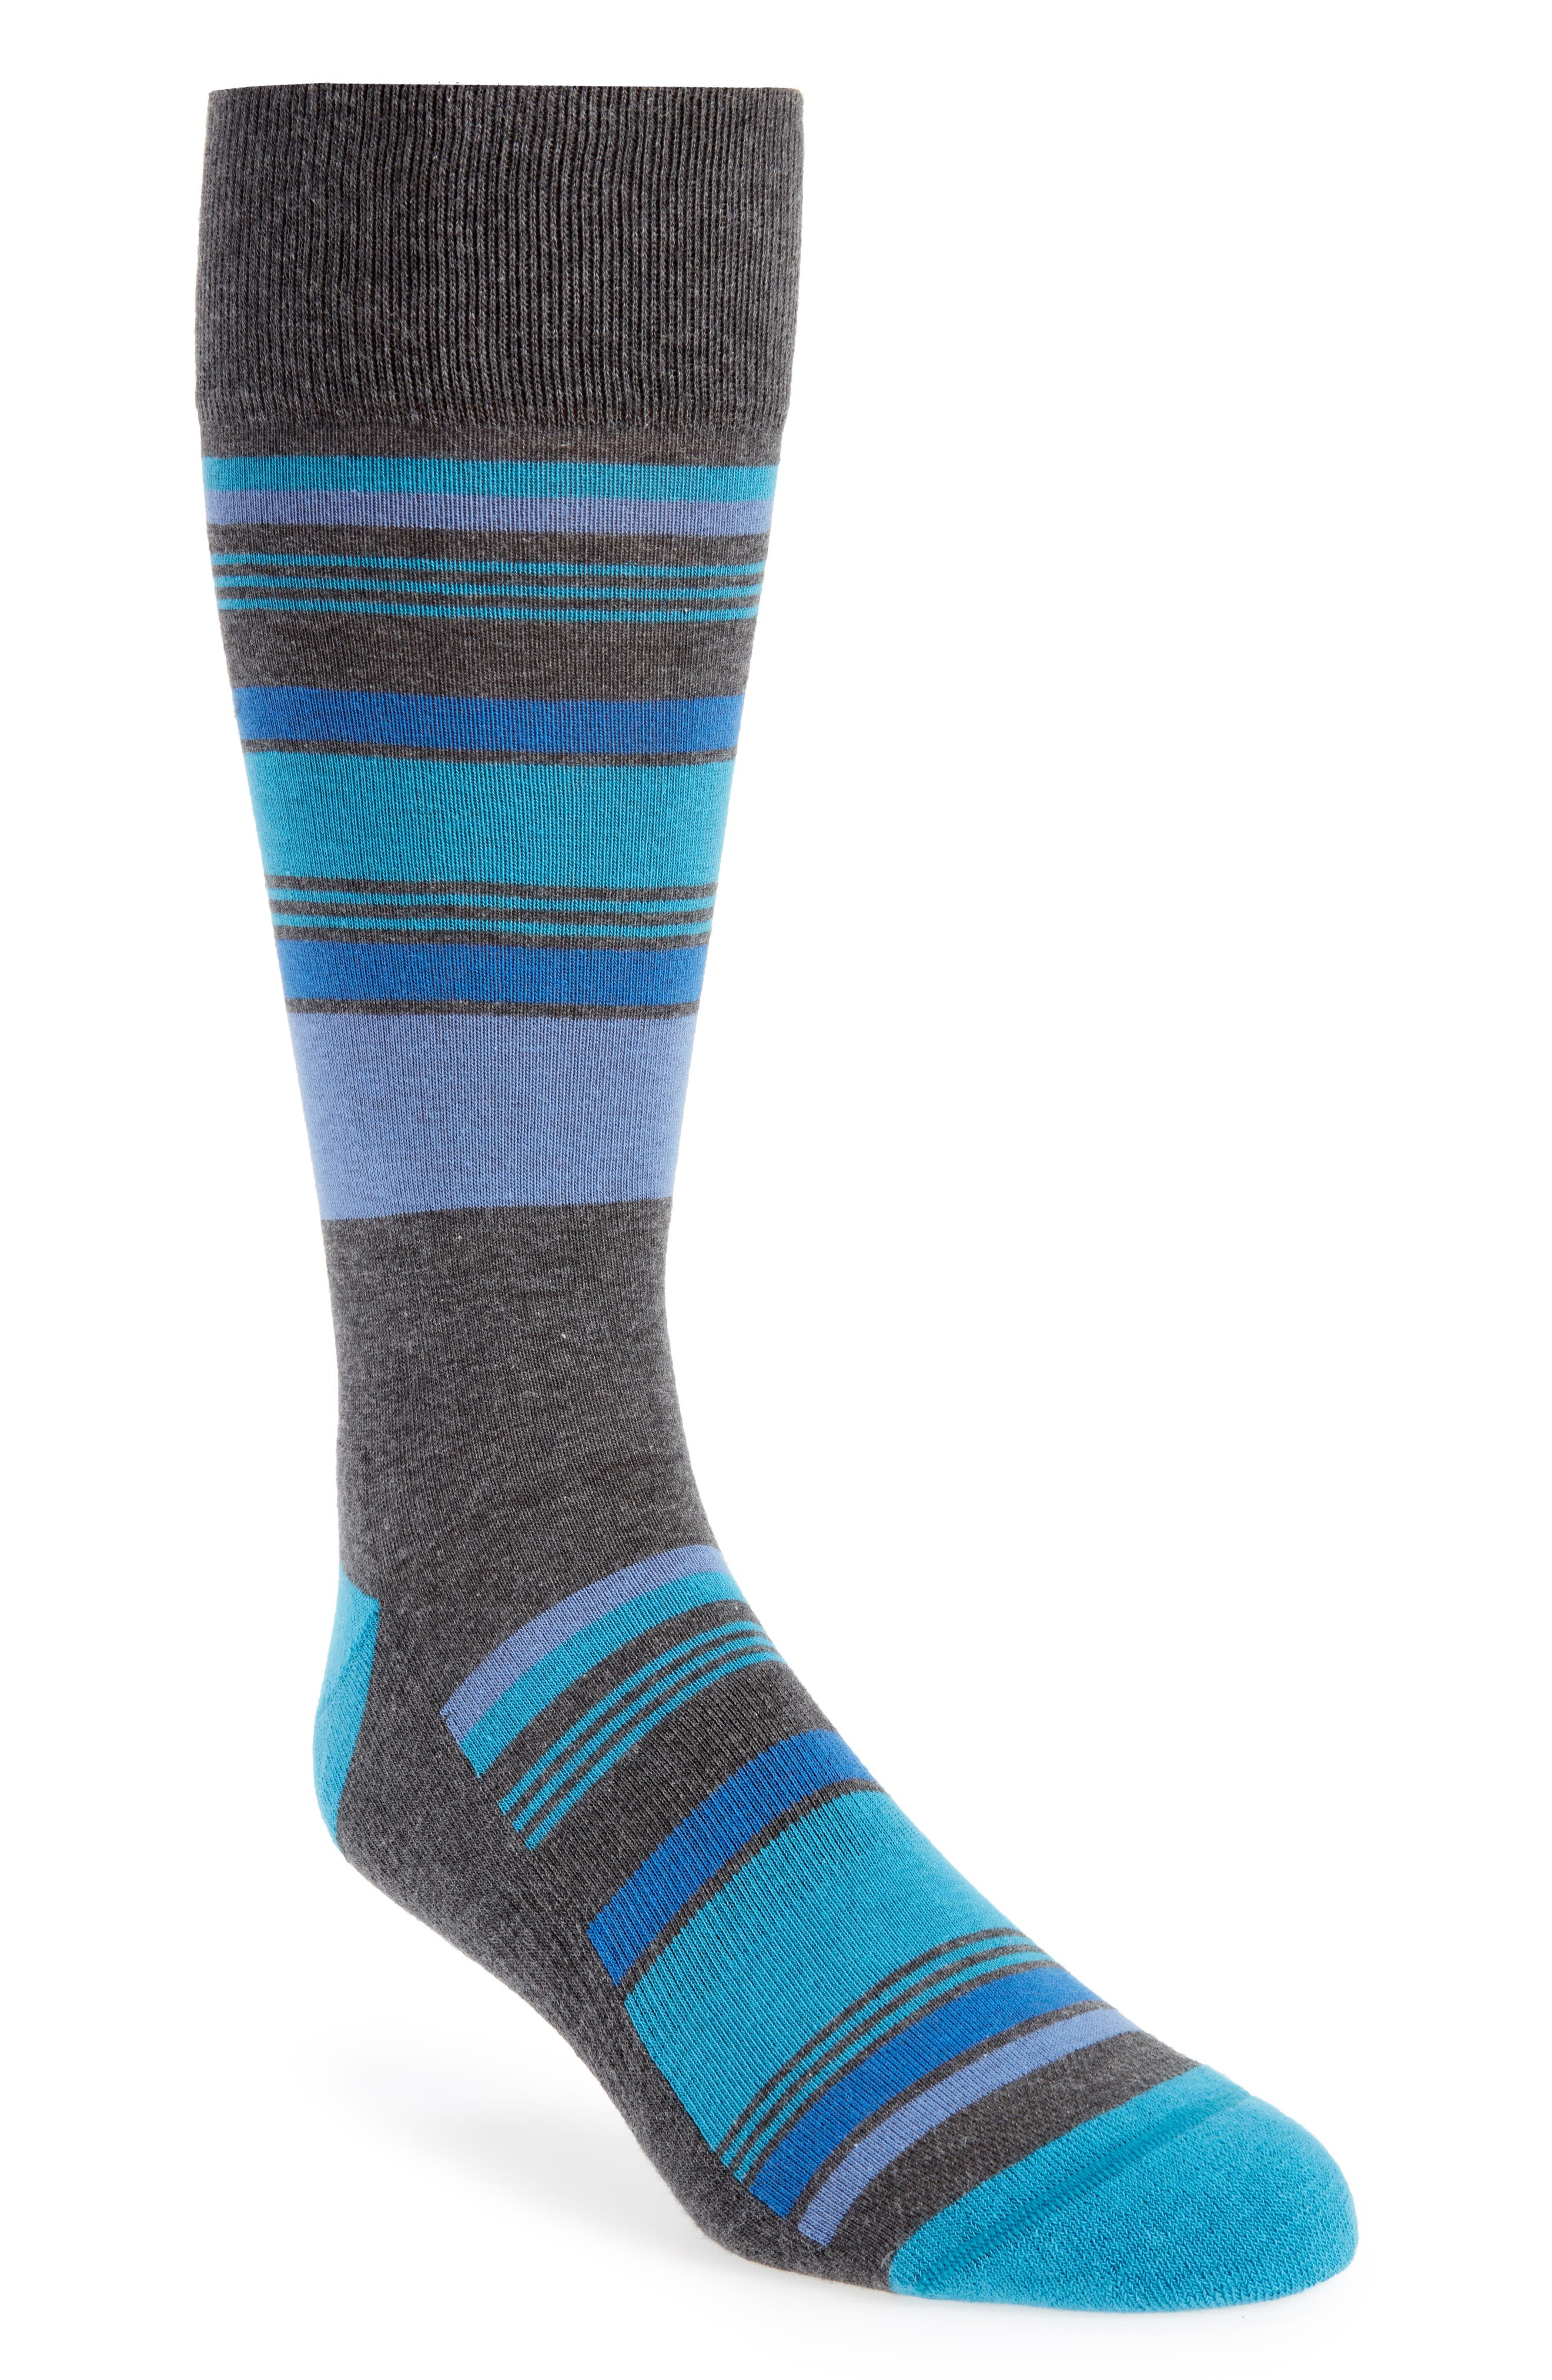 Mixed Uneven Stripe Socks,                             Main thumbnail 1, color,                             Blue/ Charcoal